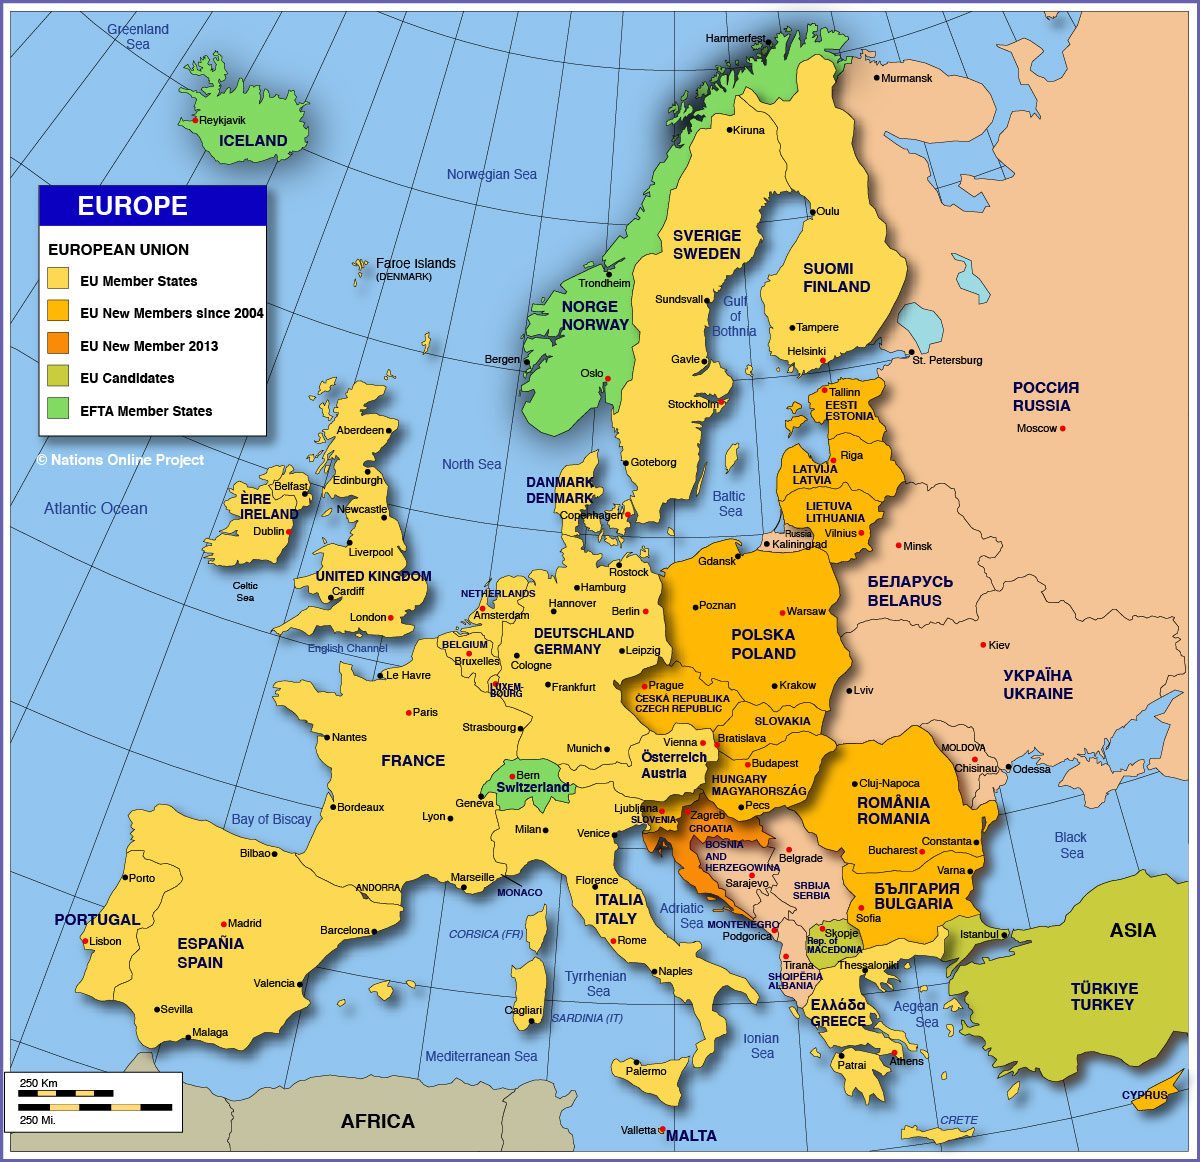 map of europe wallpaper picture hd map of europe image download 1200x1162